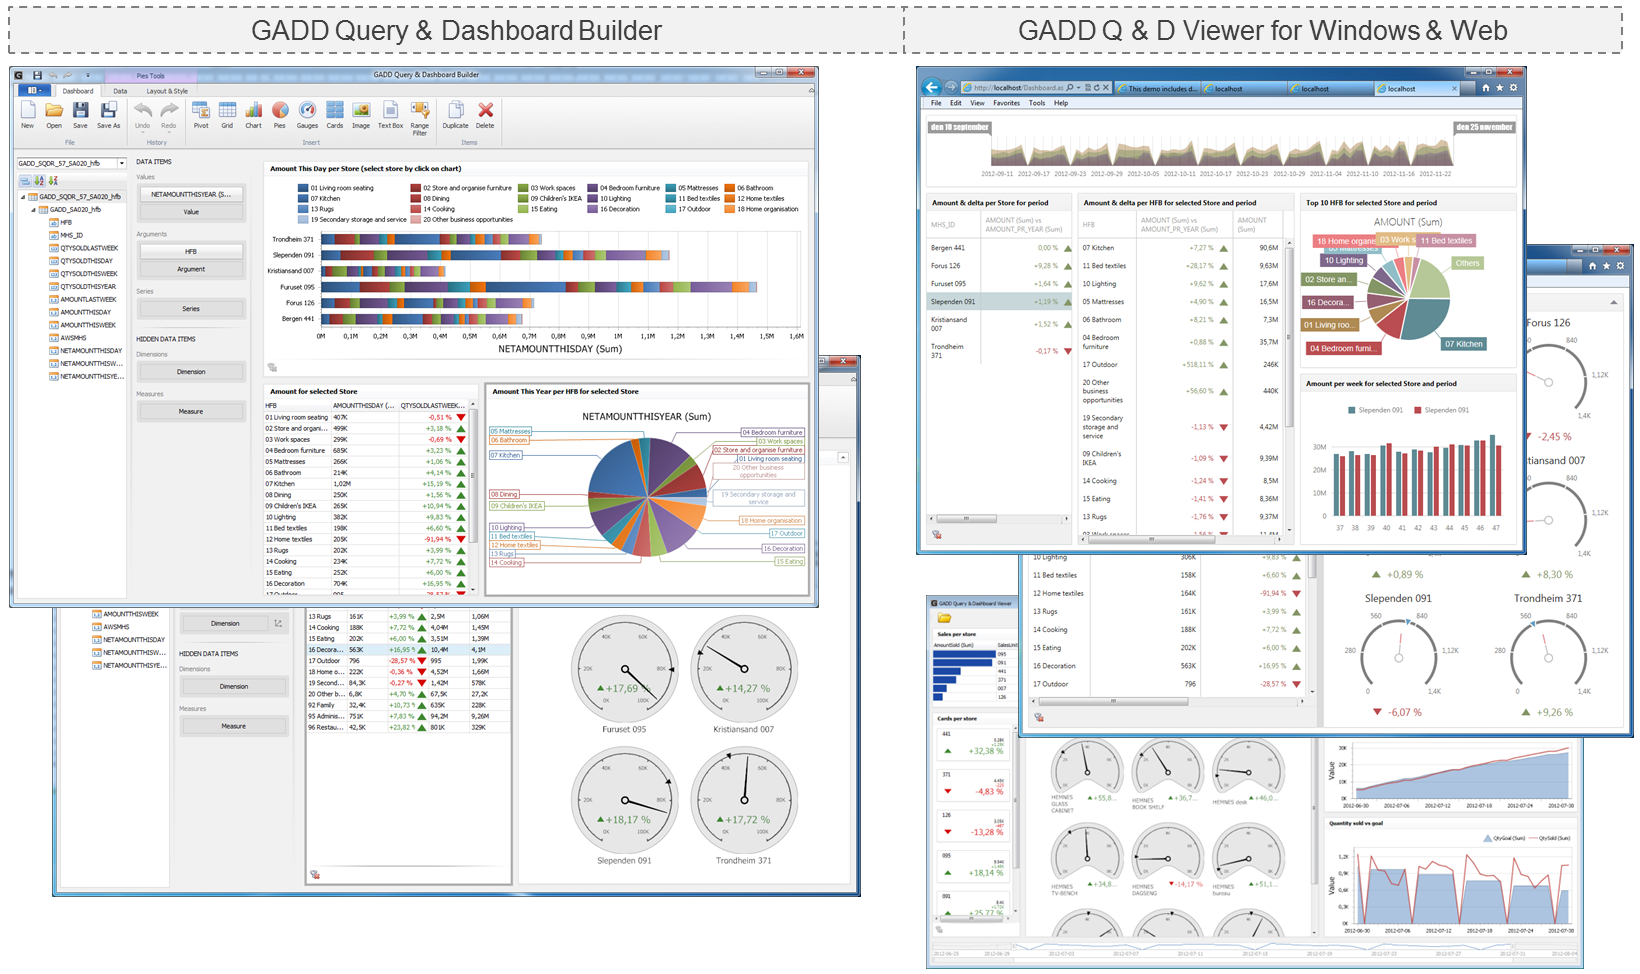 5.3. GADD and dashboards Fig. GADD Dashboards for Windows and Web.